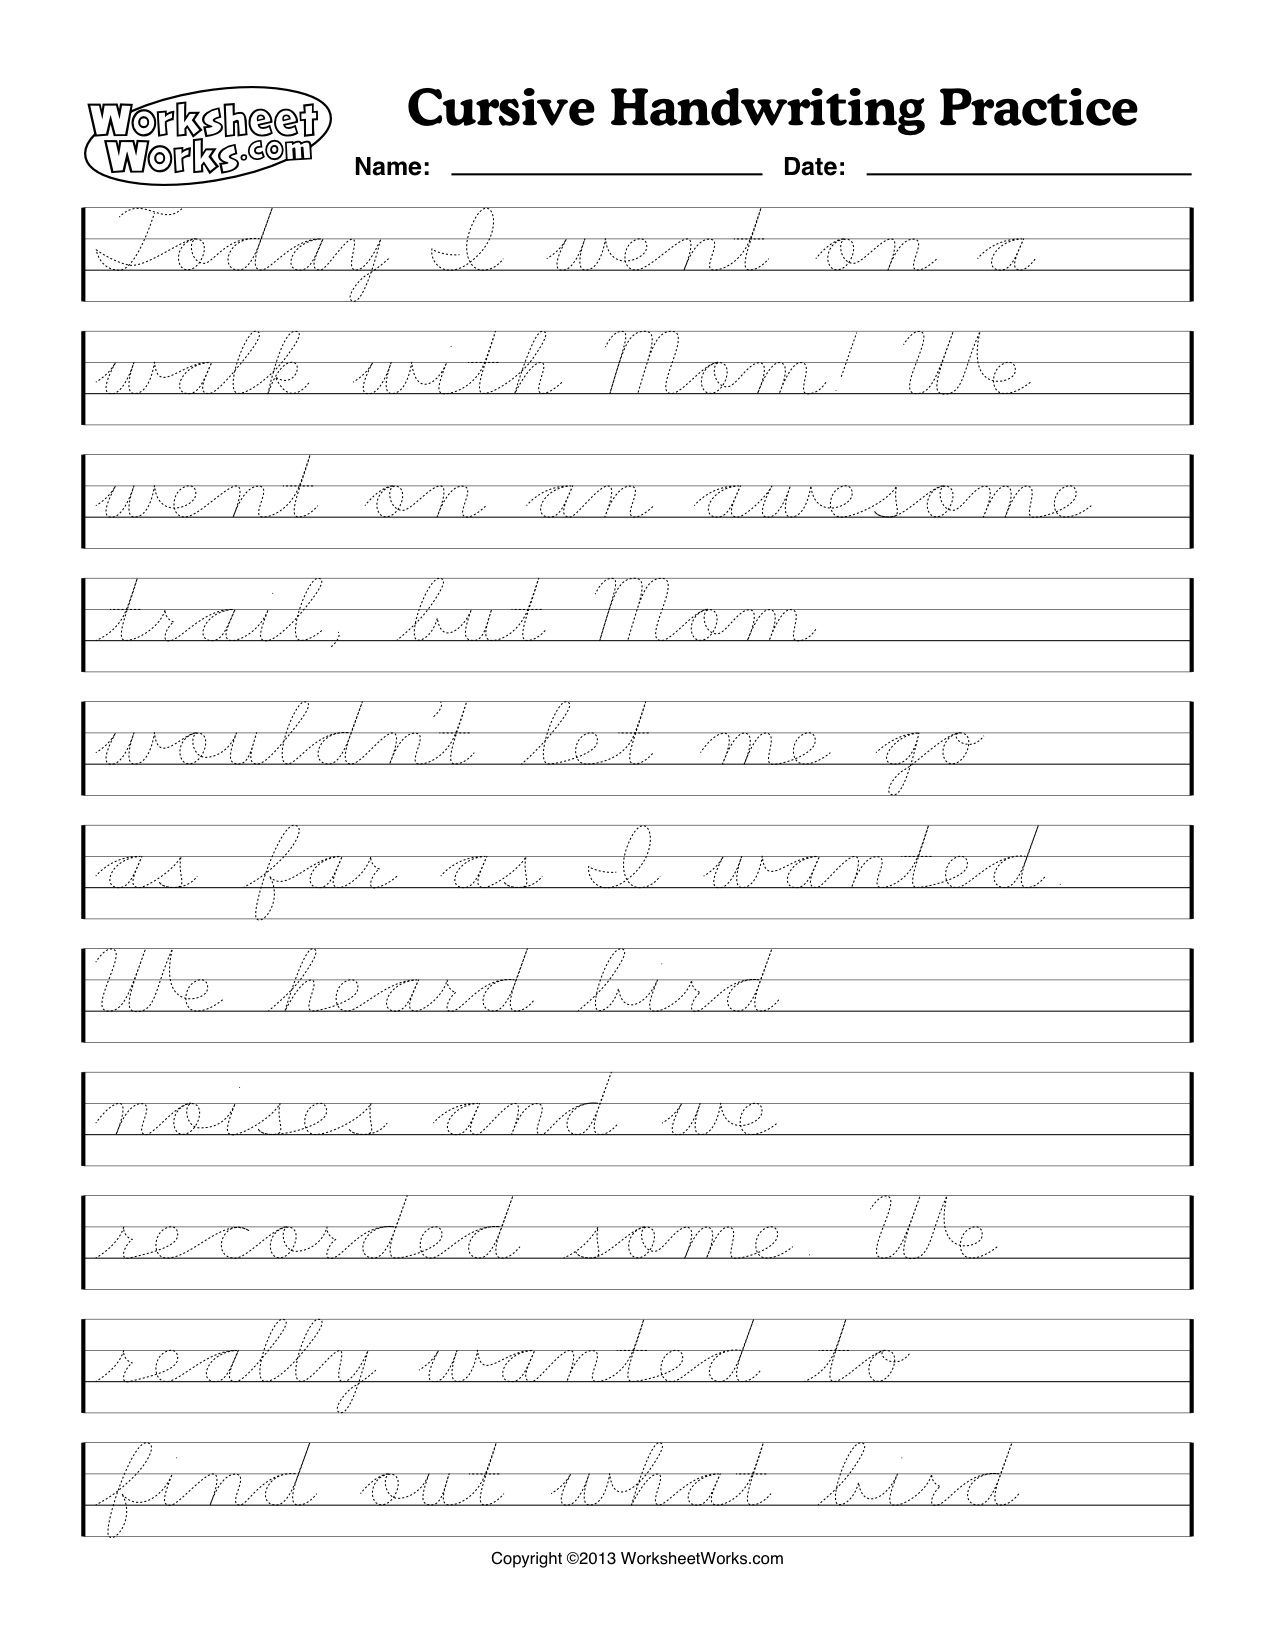 Worksheets Create A Handwriting Worksheet cursive handwriting worksheets writing worksheet one word english pic 18